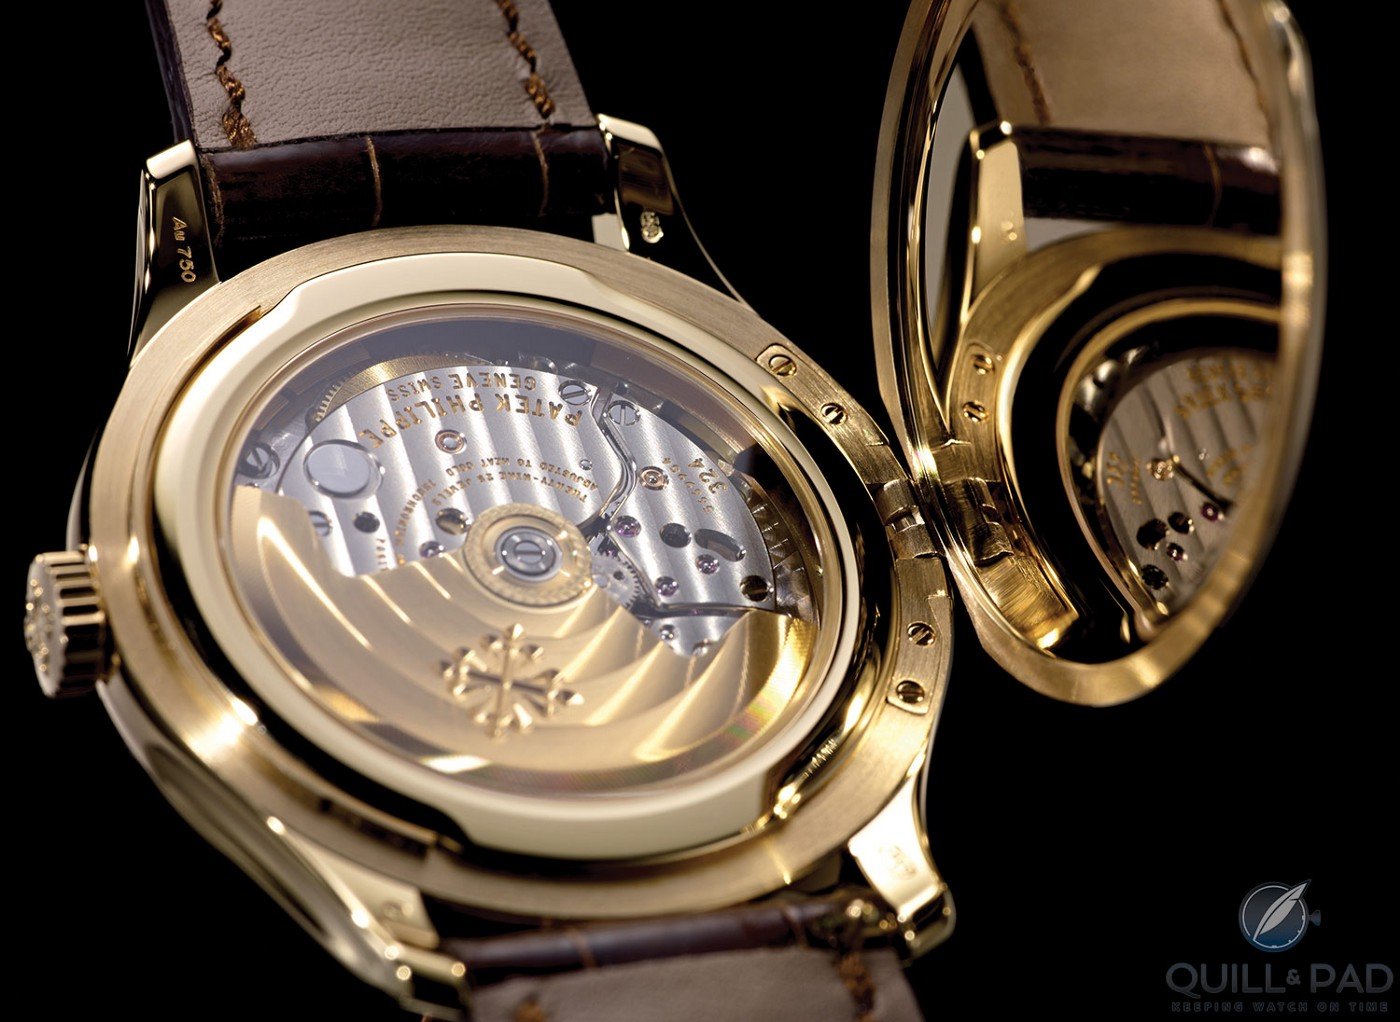 Under the cover and through the display back of the Patek Philippe Calatrava Reference 5227J